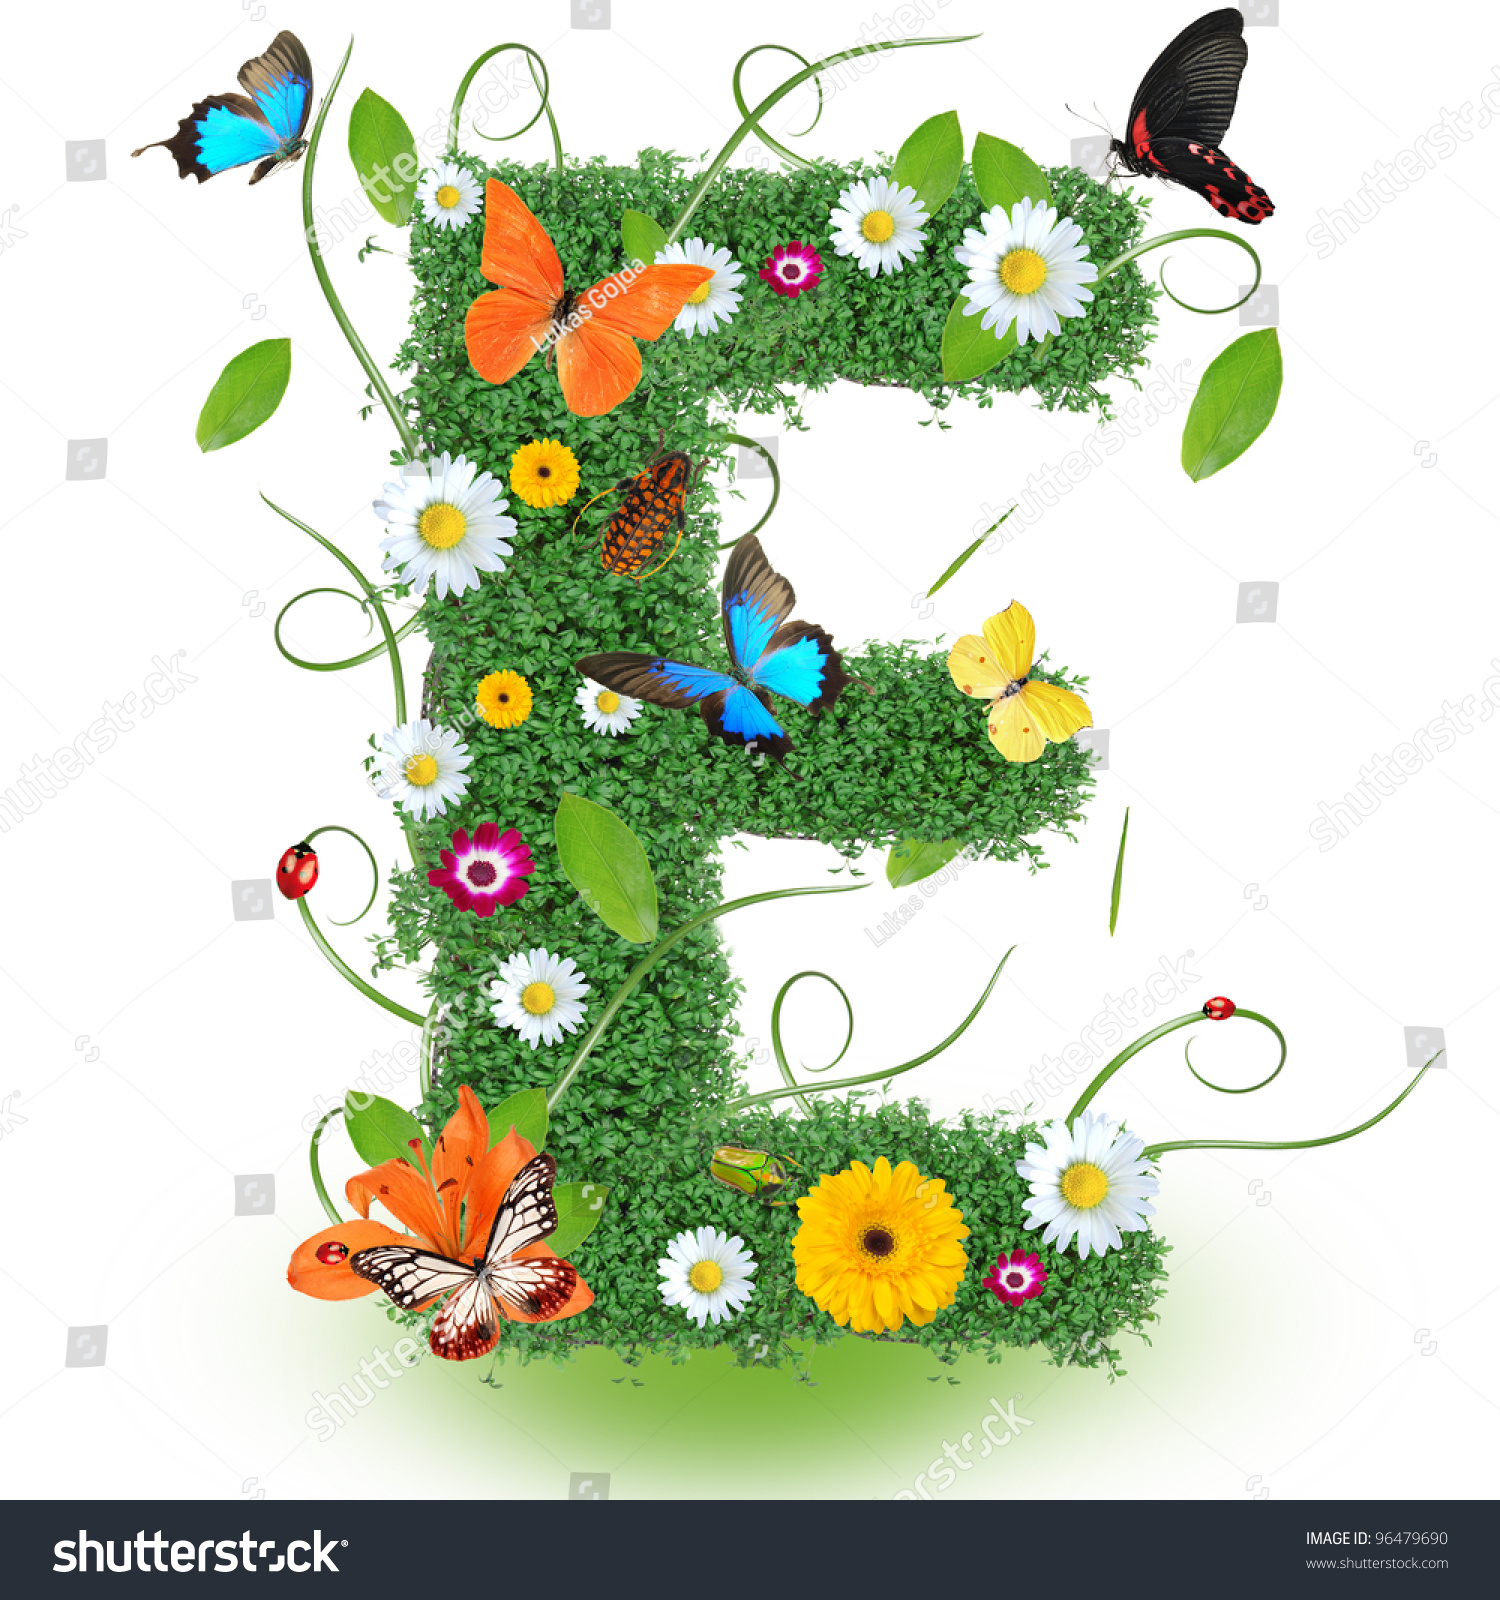 Beautiful Spring Letter E Stock Photo 96479690 - Shutterstock